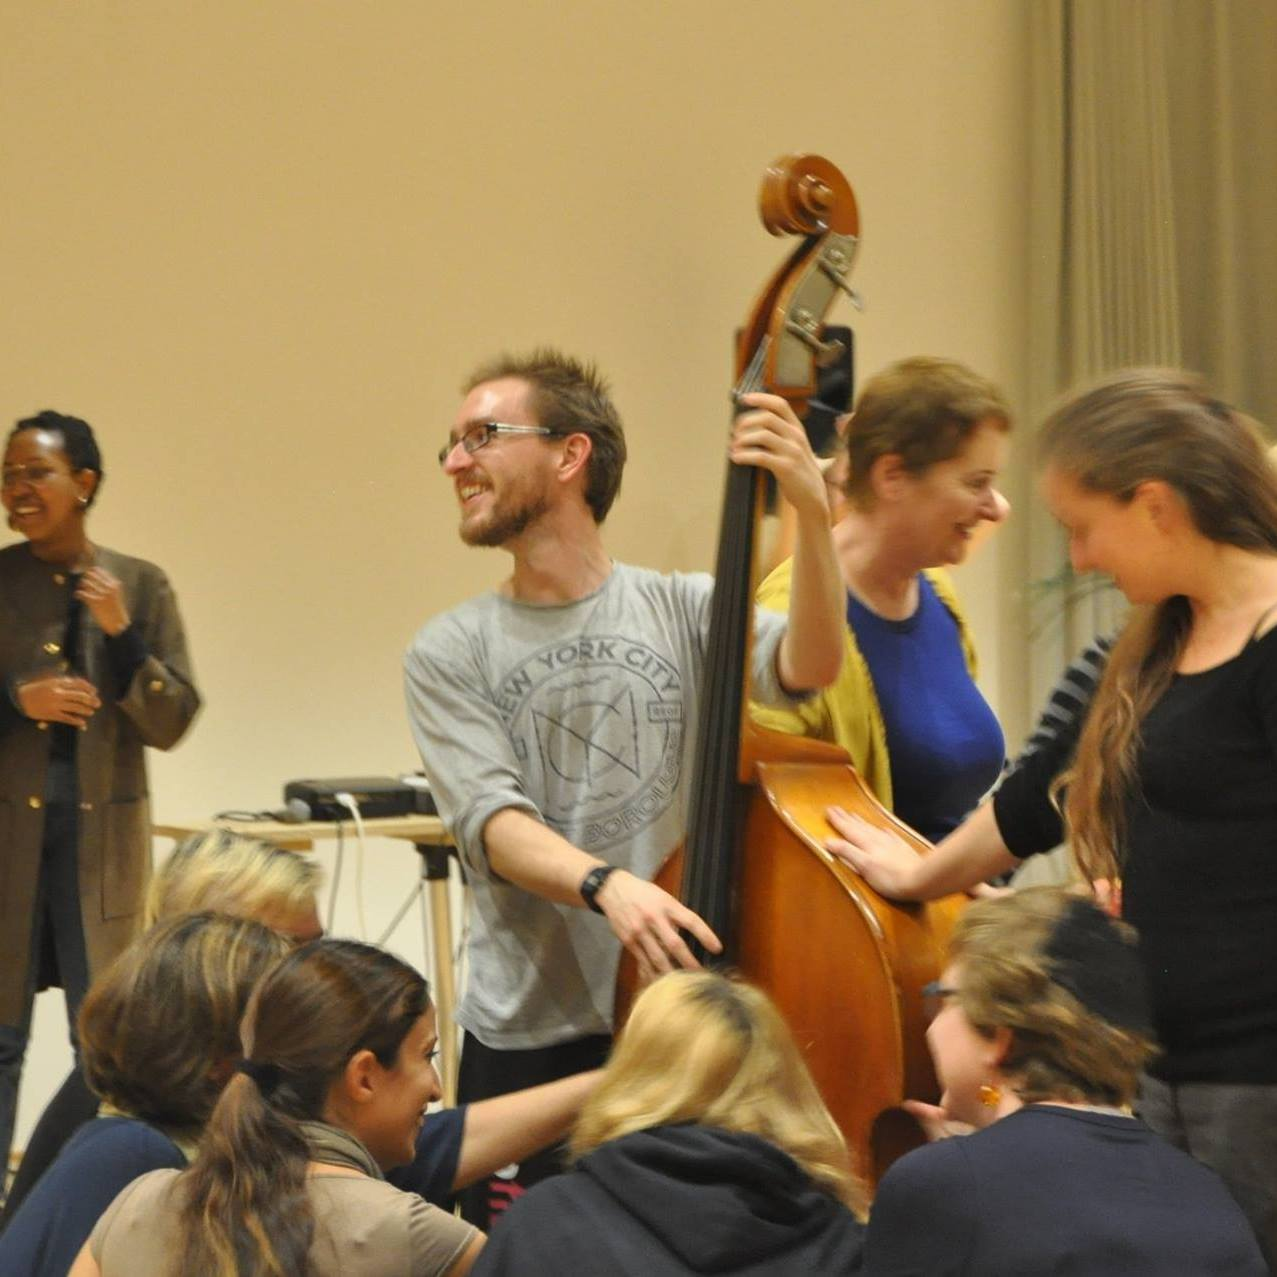 Doug Kemp playing double bass in a crowd, smiling